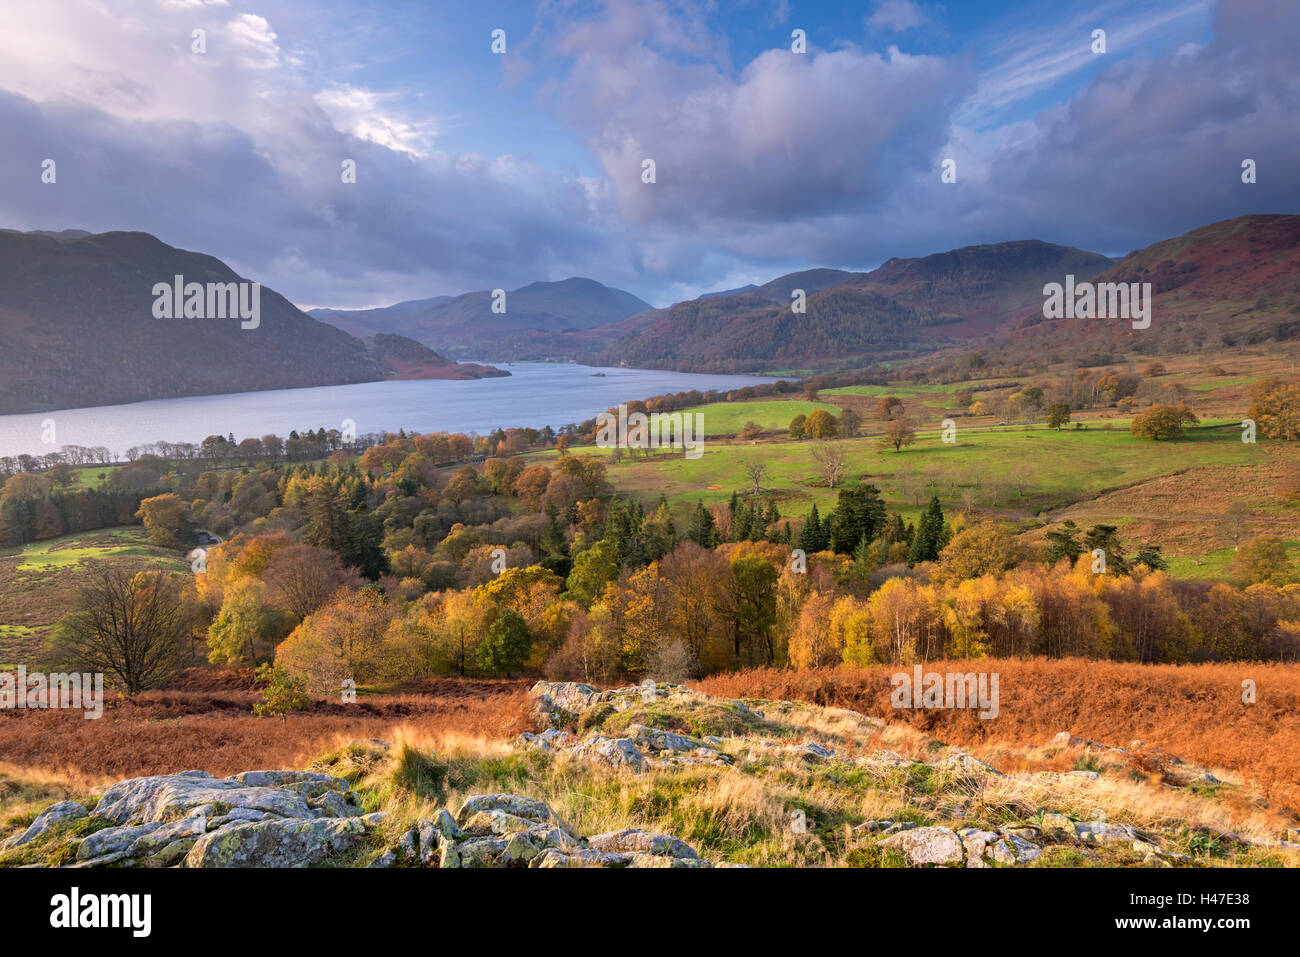 Autumnal view towards Ullswater in the Lake District National Park, Cumbria, England. Autumn (November) 2014. - Stock Image